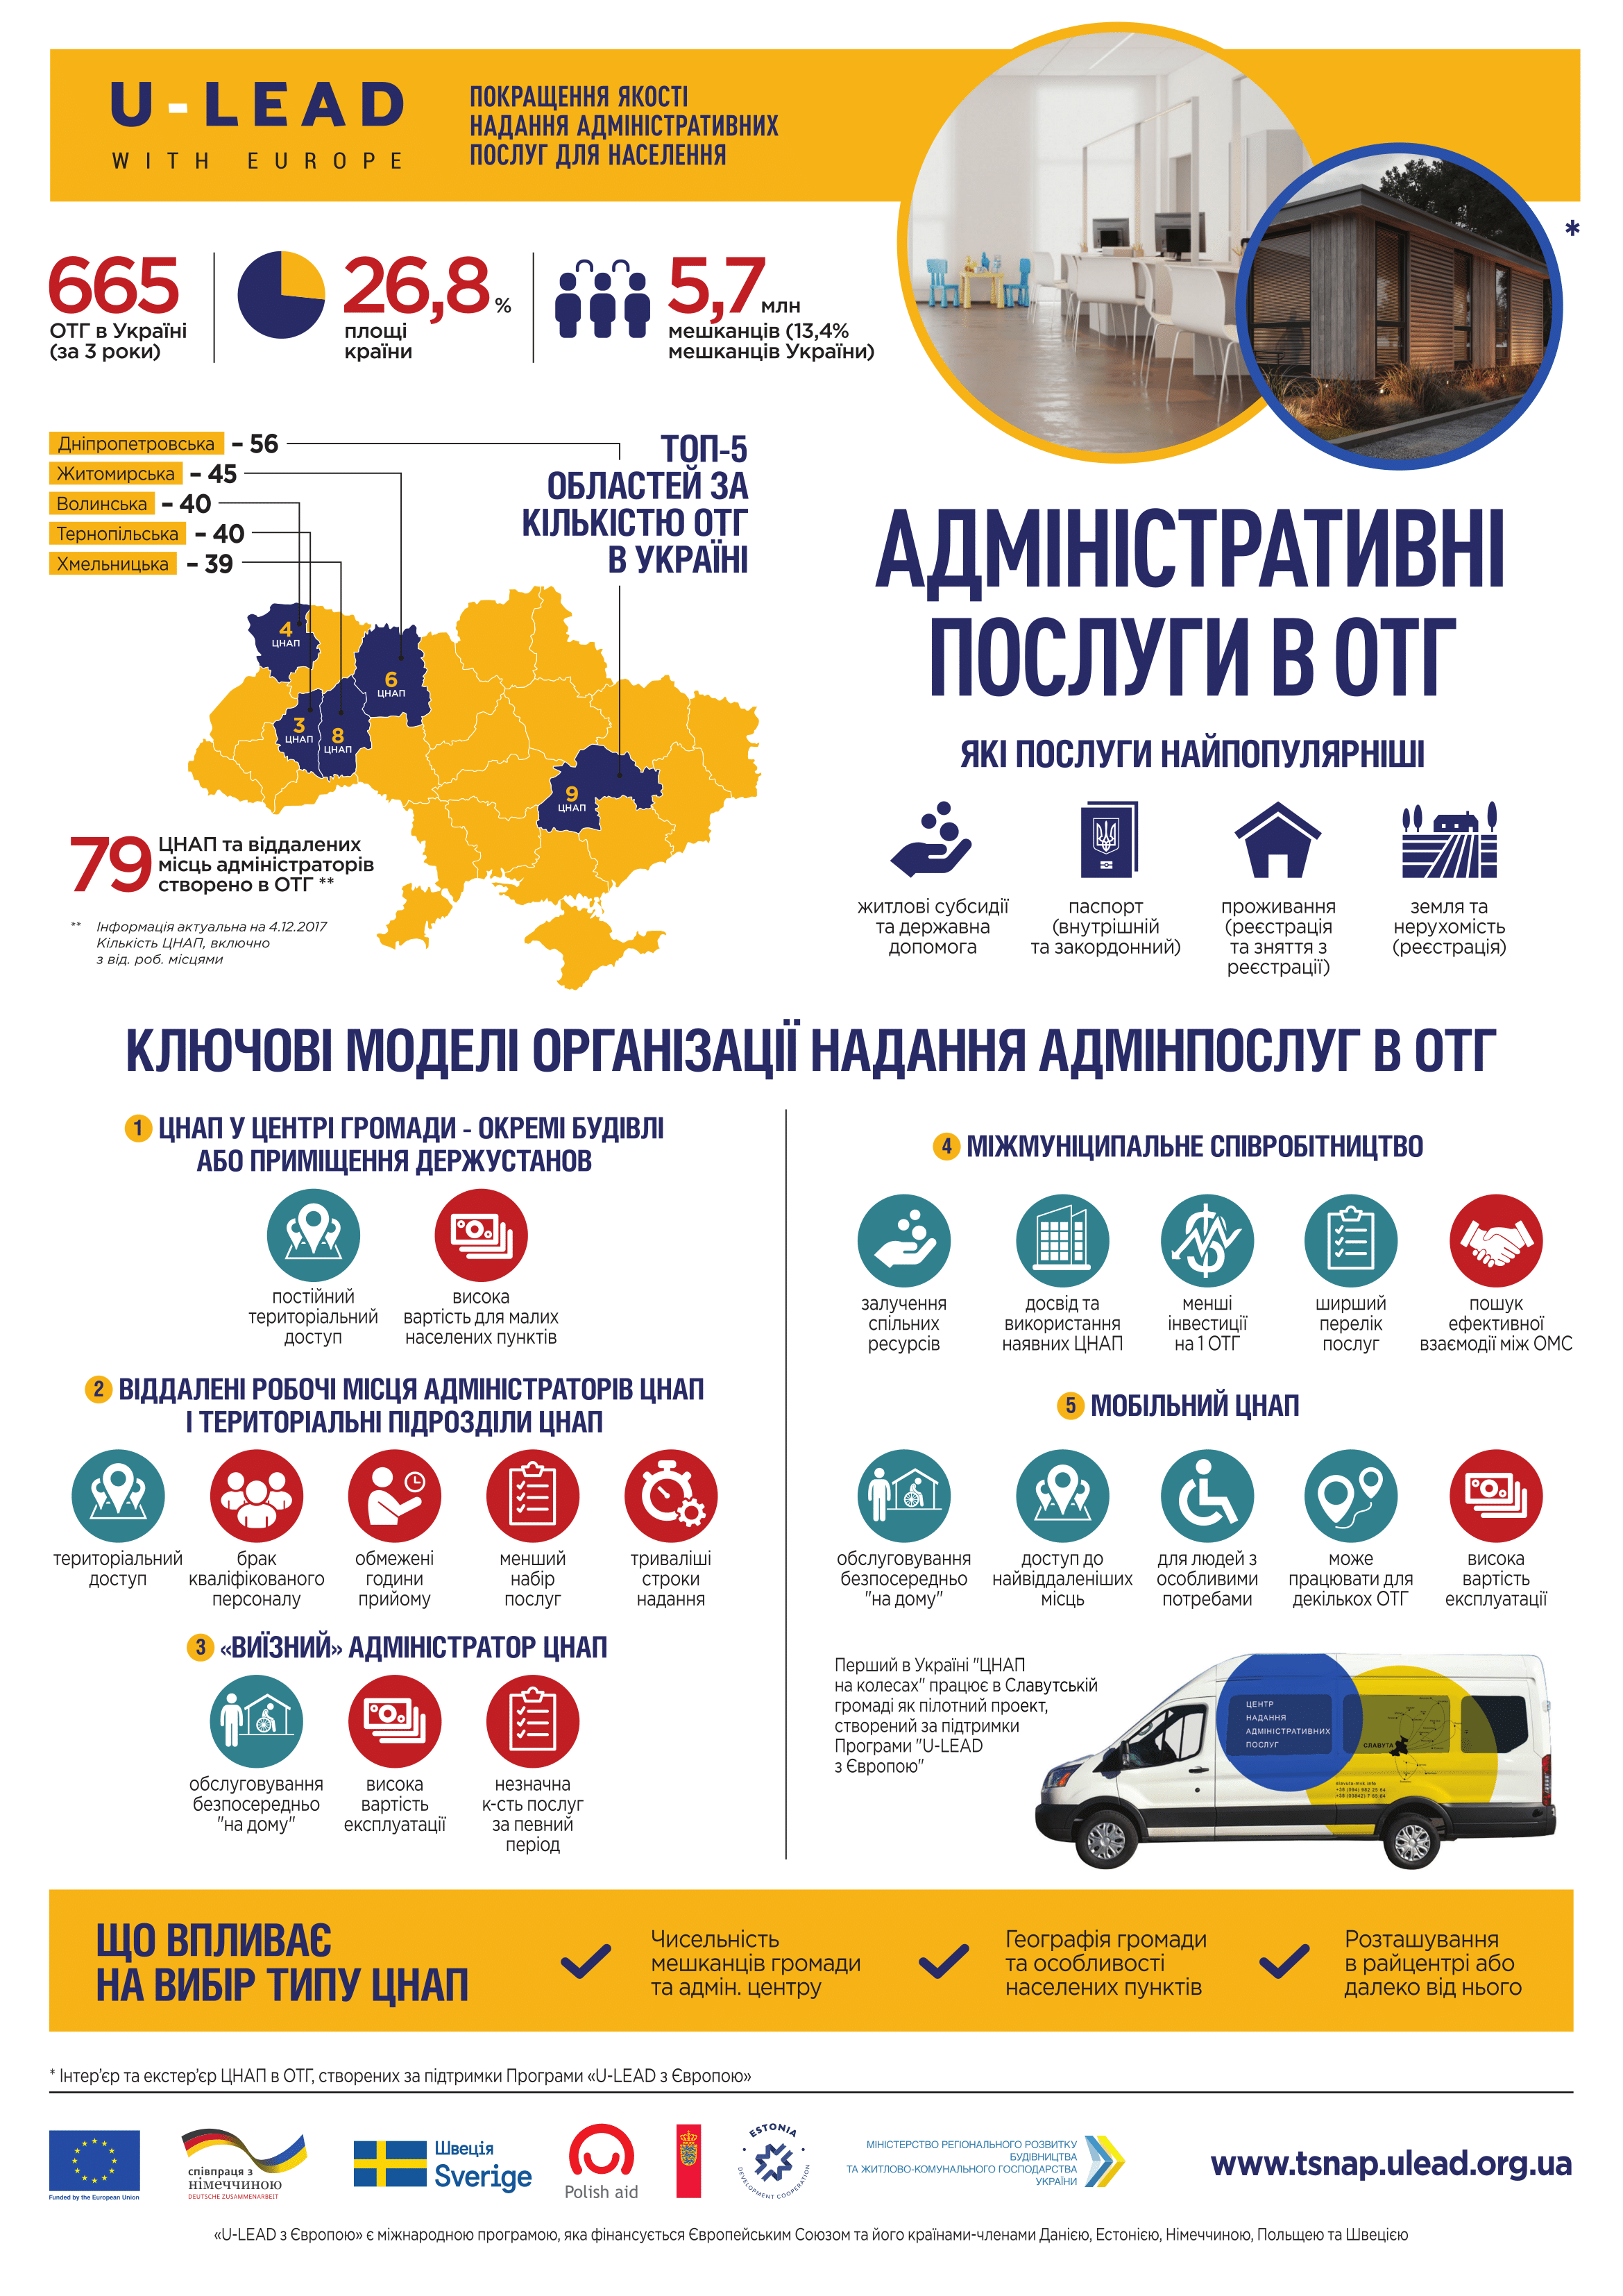 Amalgamated hromadas create modern centres to provide most popular administrative services, - Vyacheslav Nehoda (+ infographics)